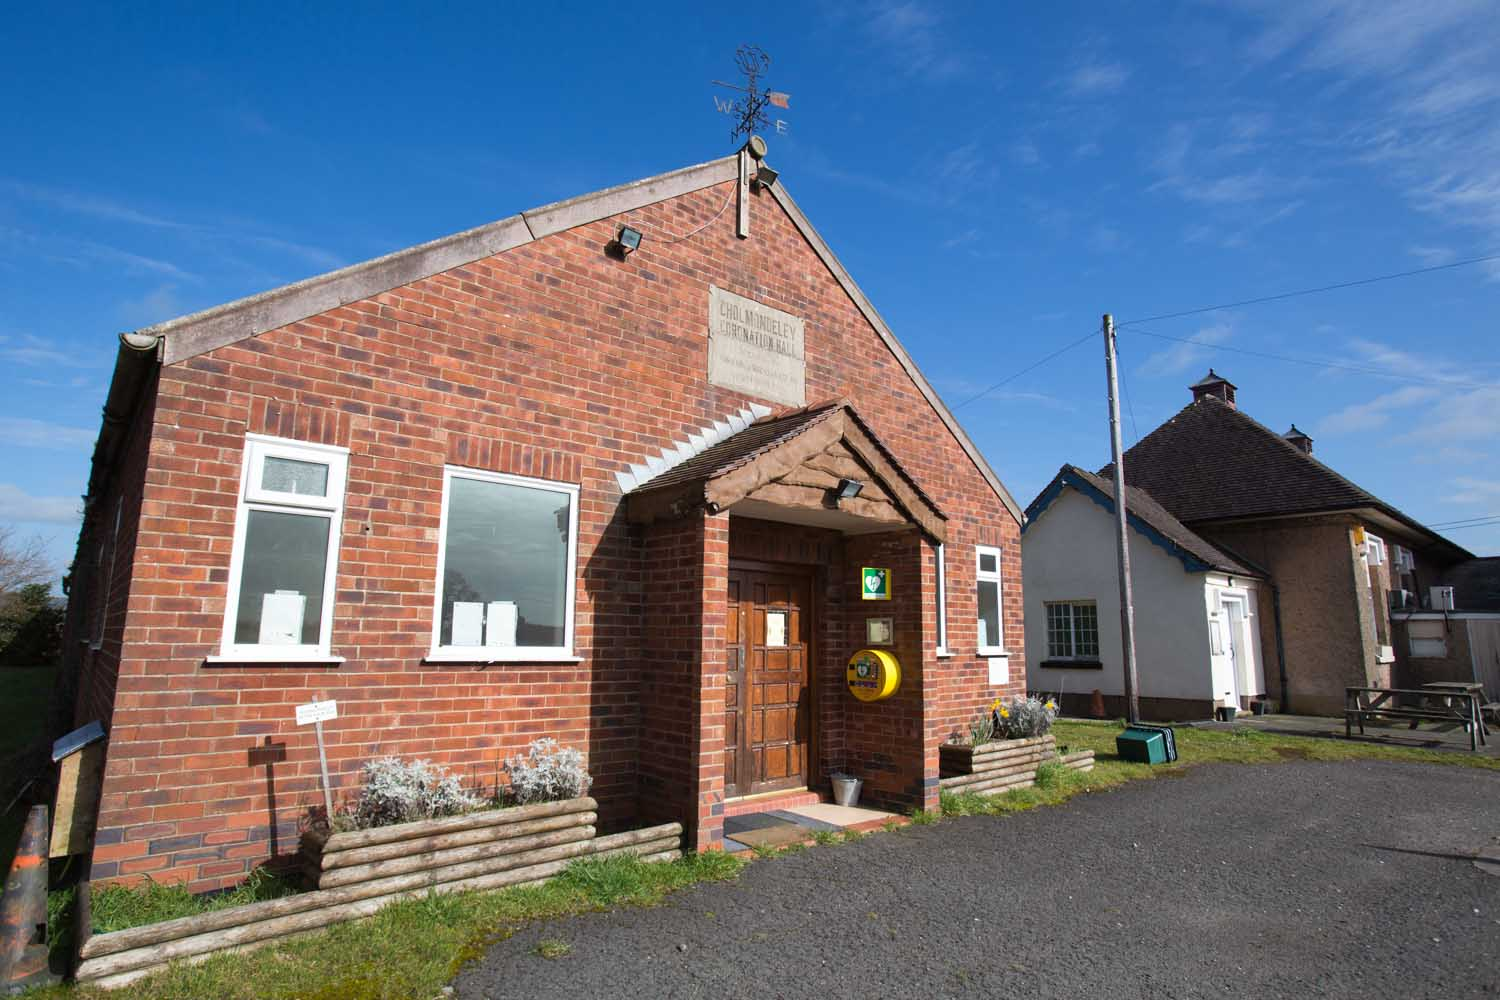 Picturesque view of Cholmondeley Coronation Hall, in the Cheshire village of Bickley.